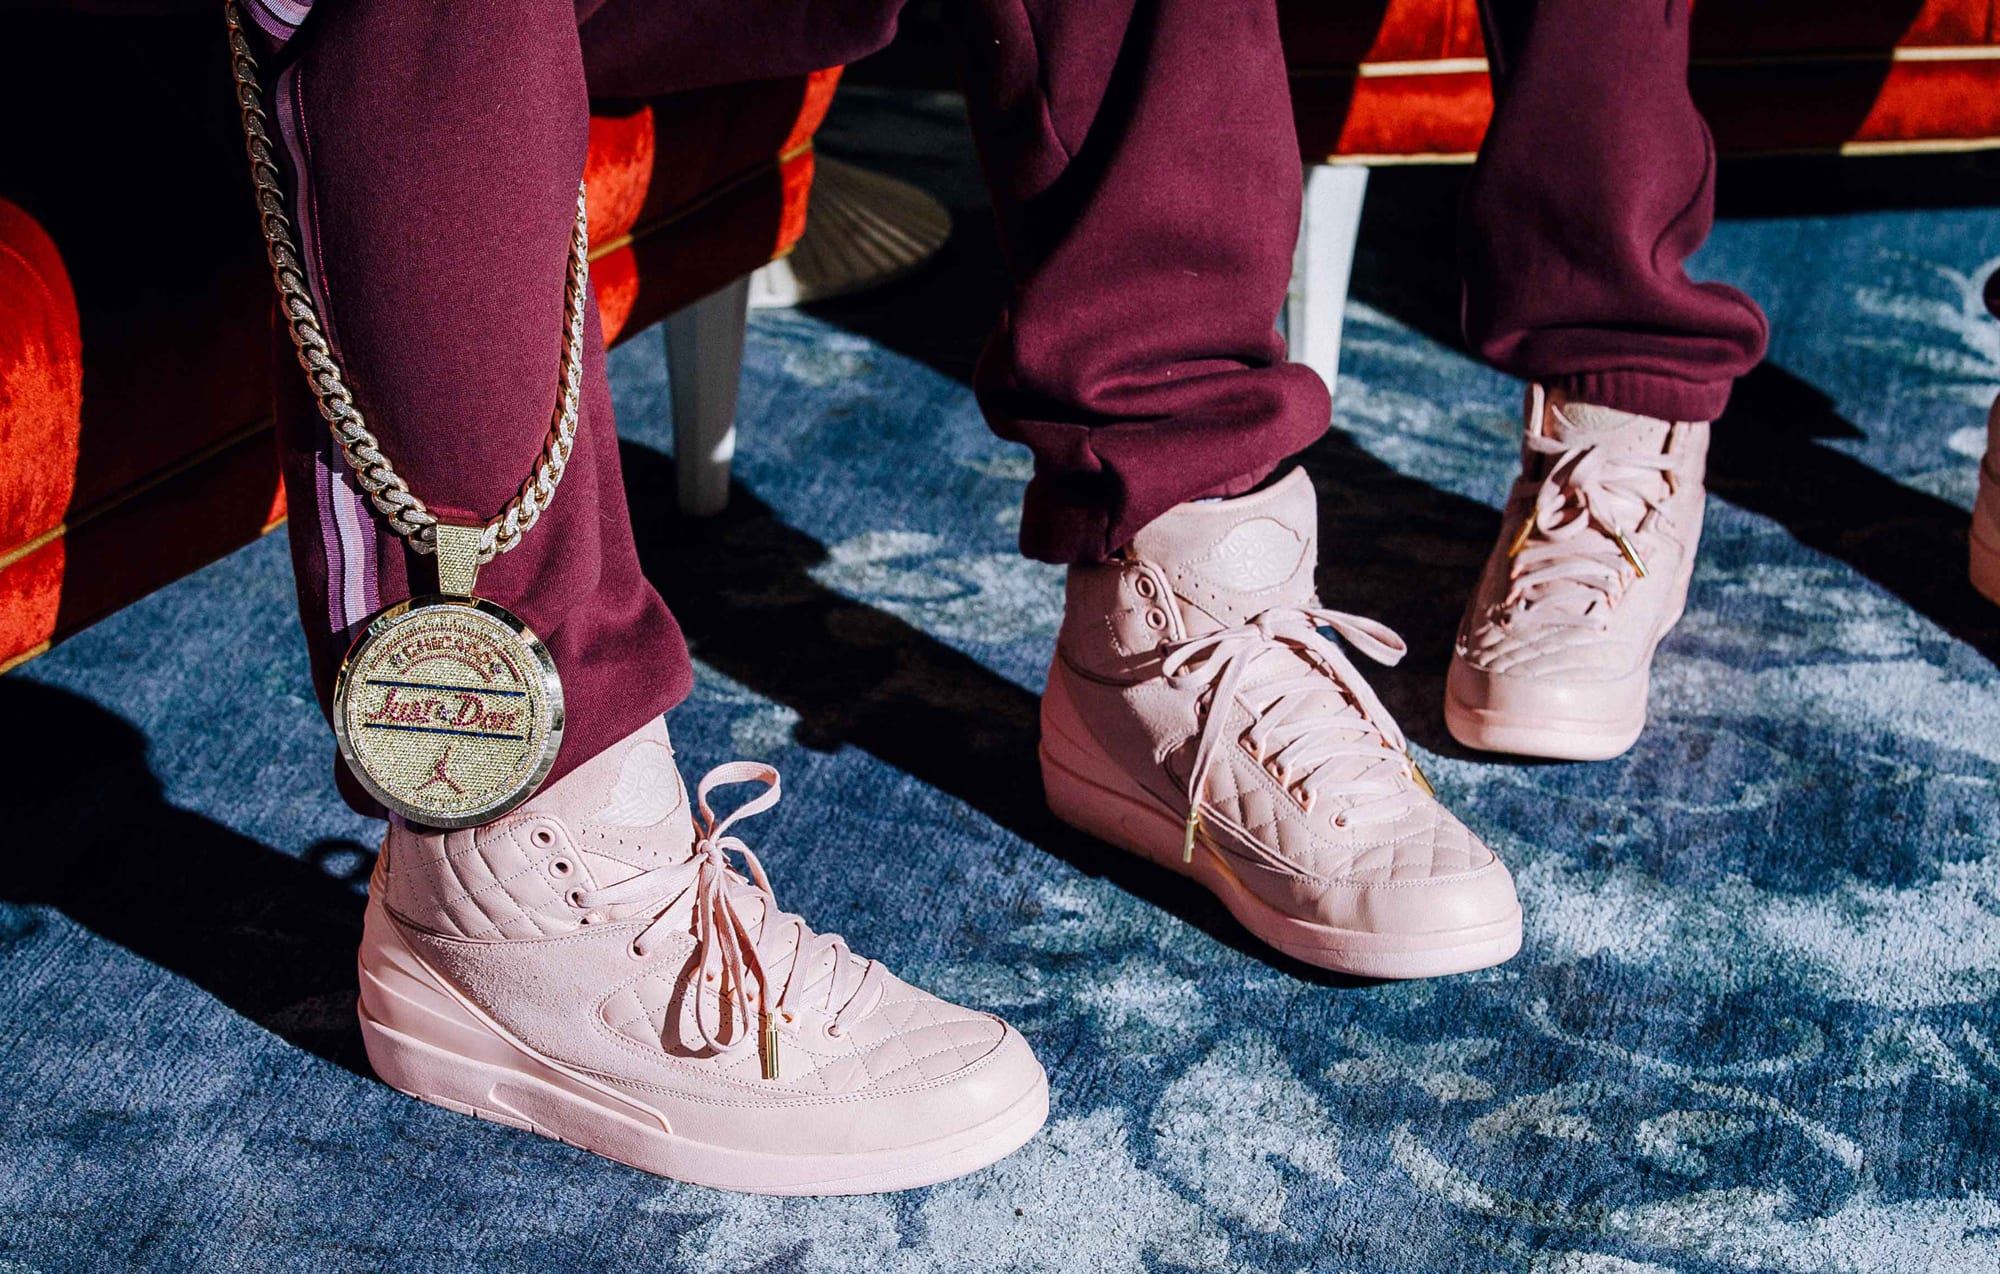 Jordan 2 Don C On Feet